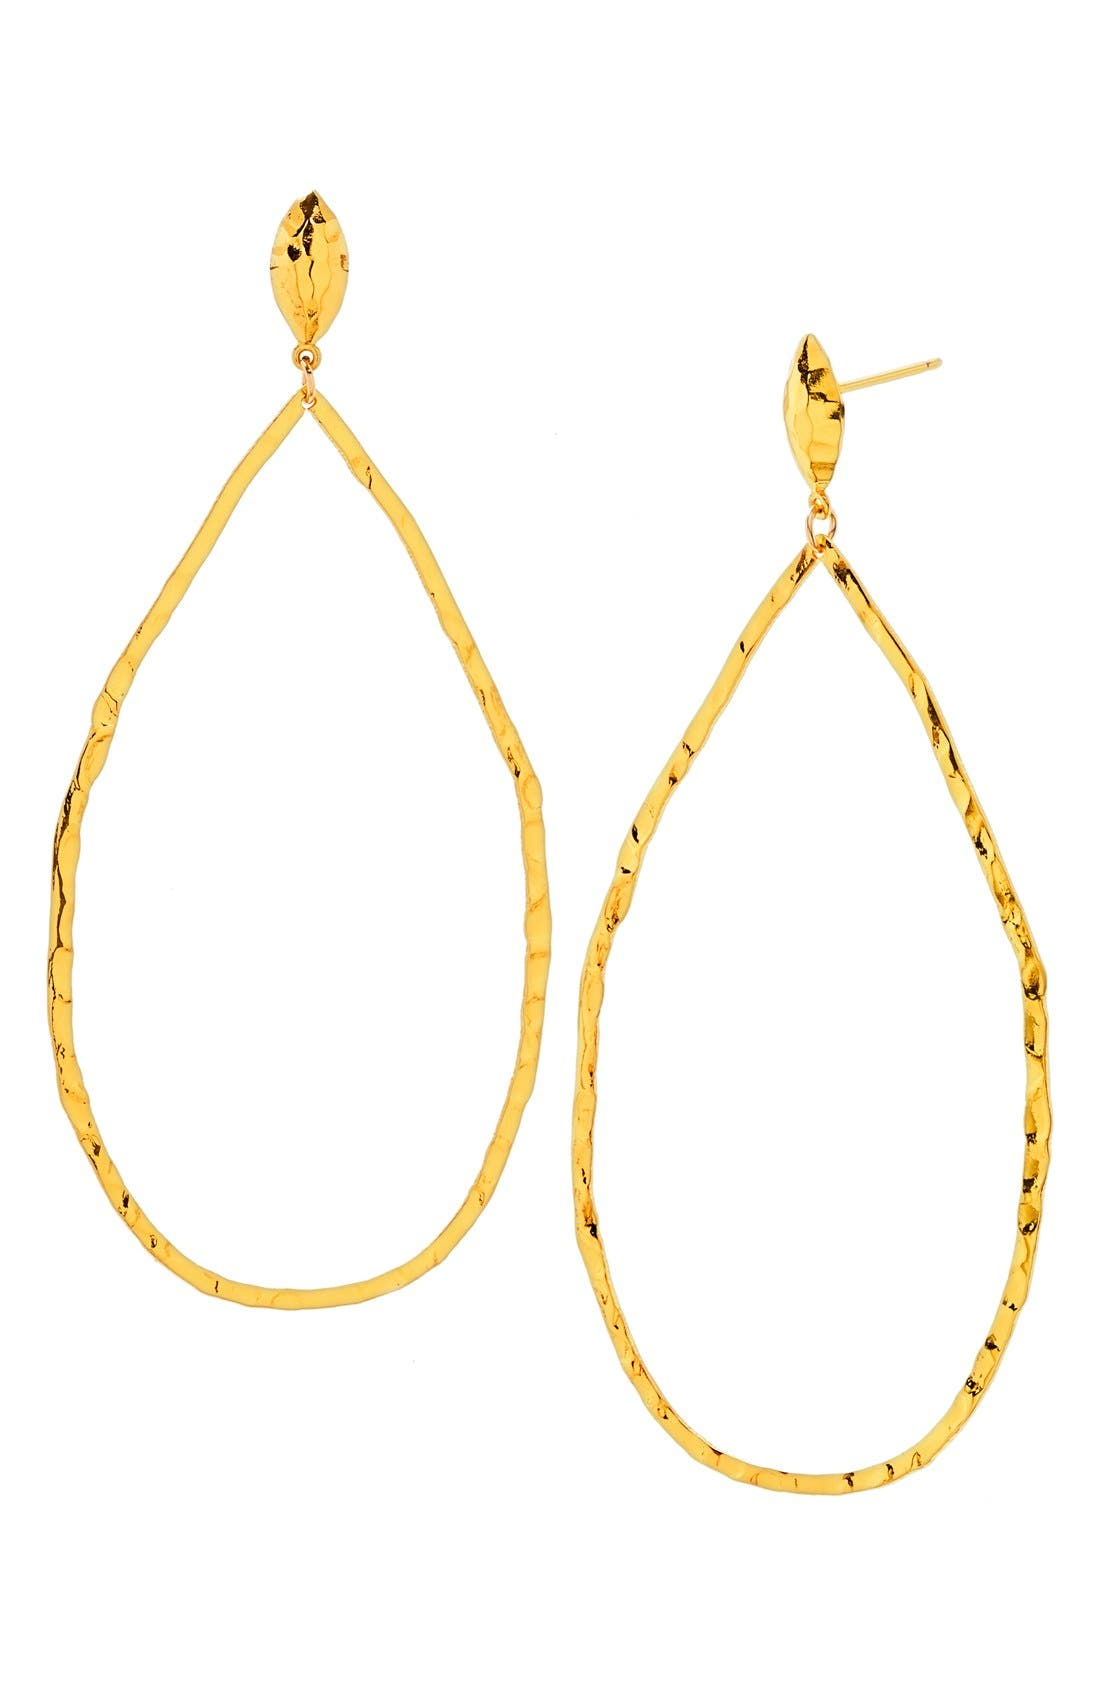 gorjana 'Lola' Drop Earrings